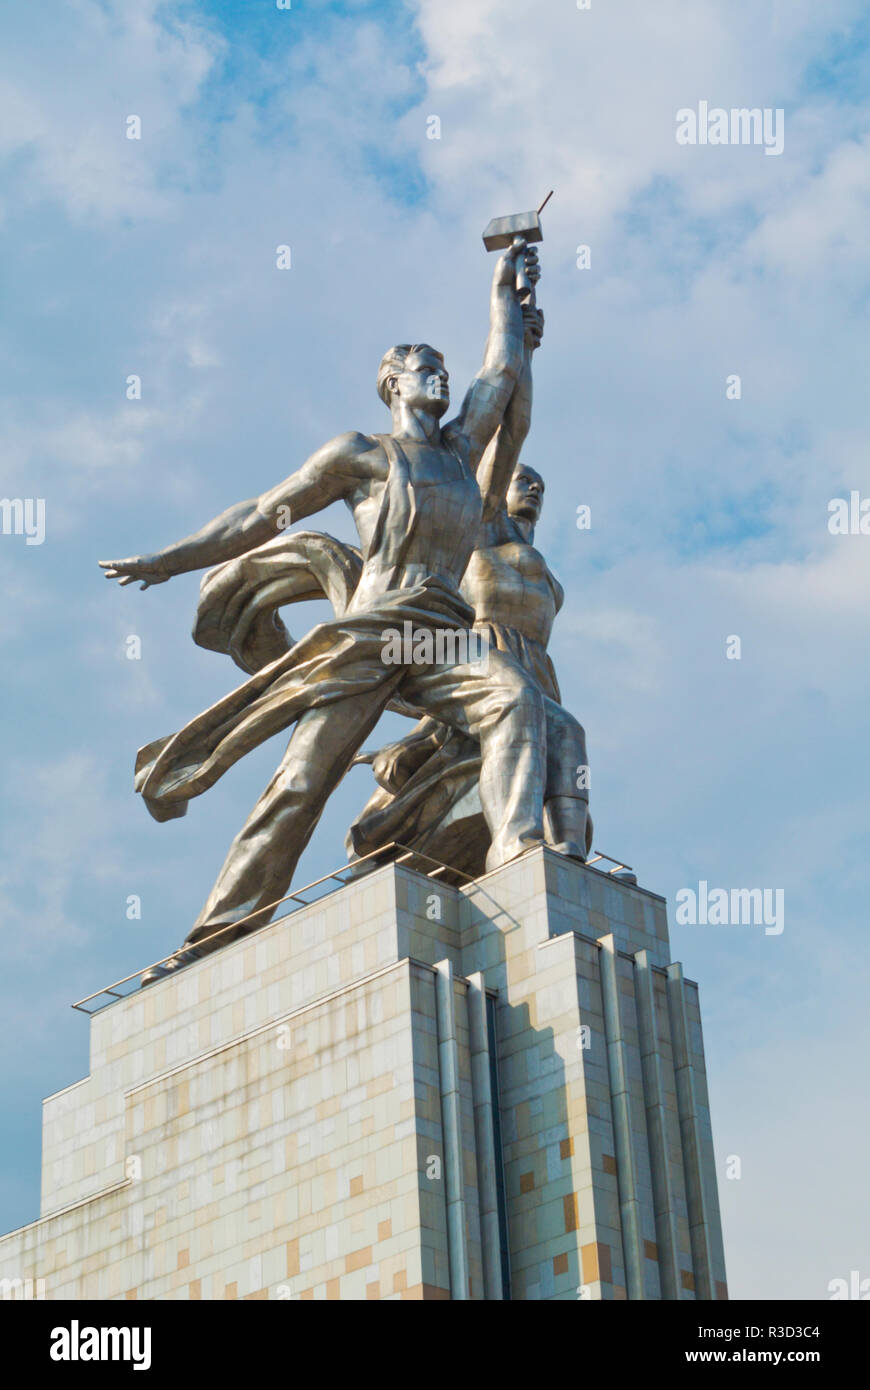 Worker and Kolkhoz Woman, Alexeyevsky district, Moscow, Russia Stock Photo